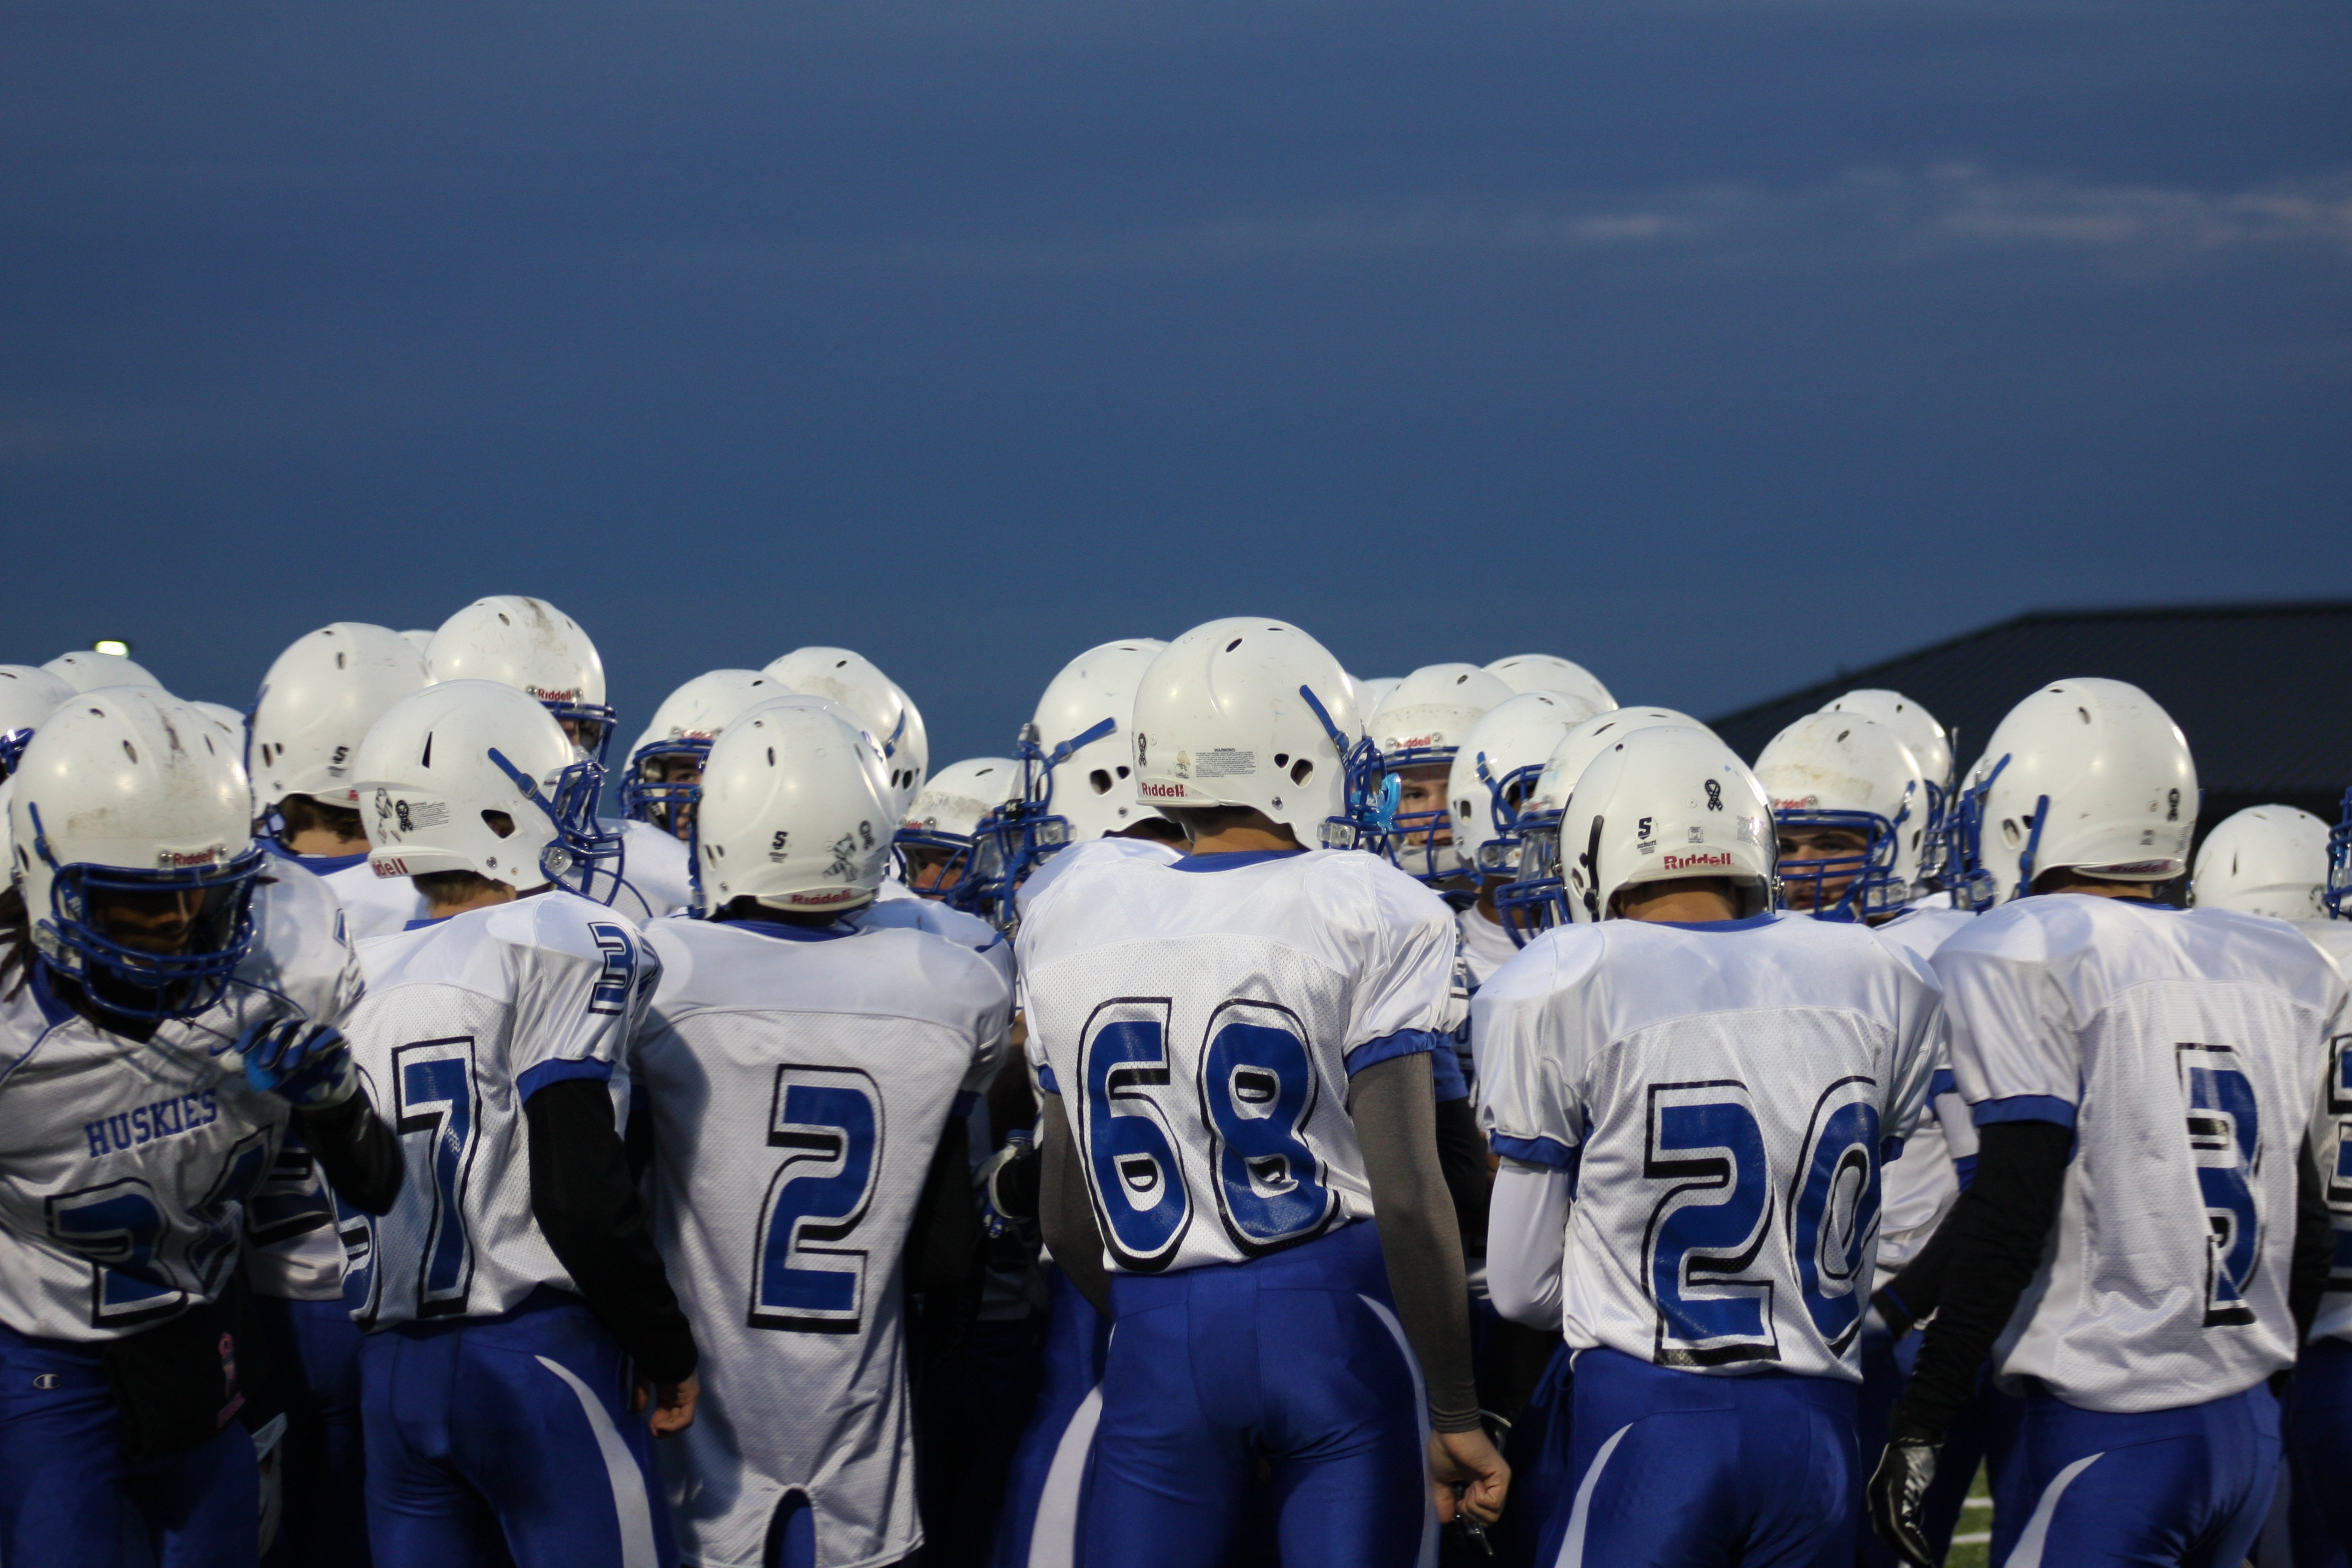 The team huddles up for a pep-talk before the game. Photo credit: Hanna Dunkel